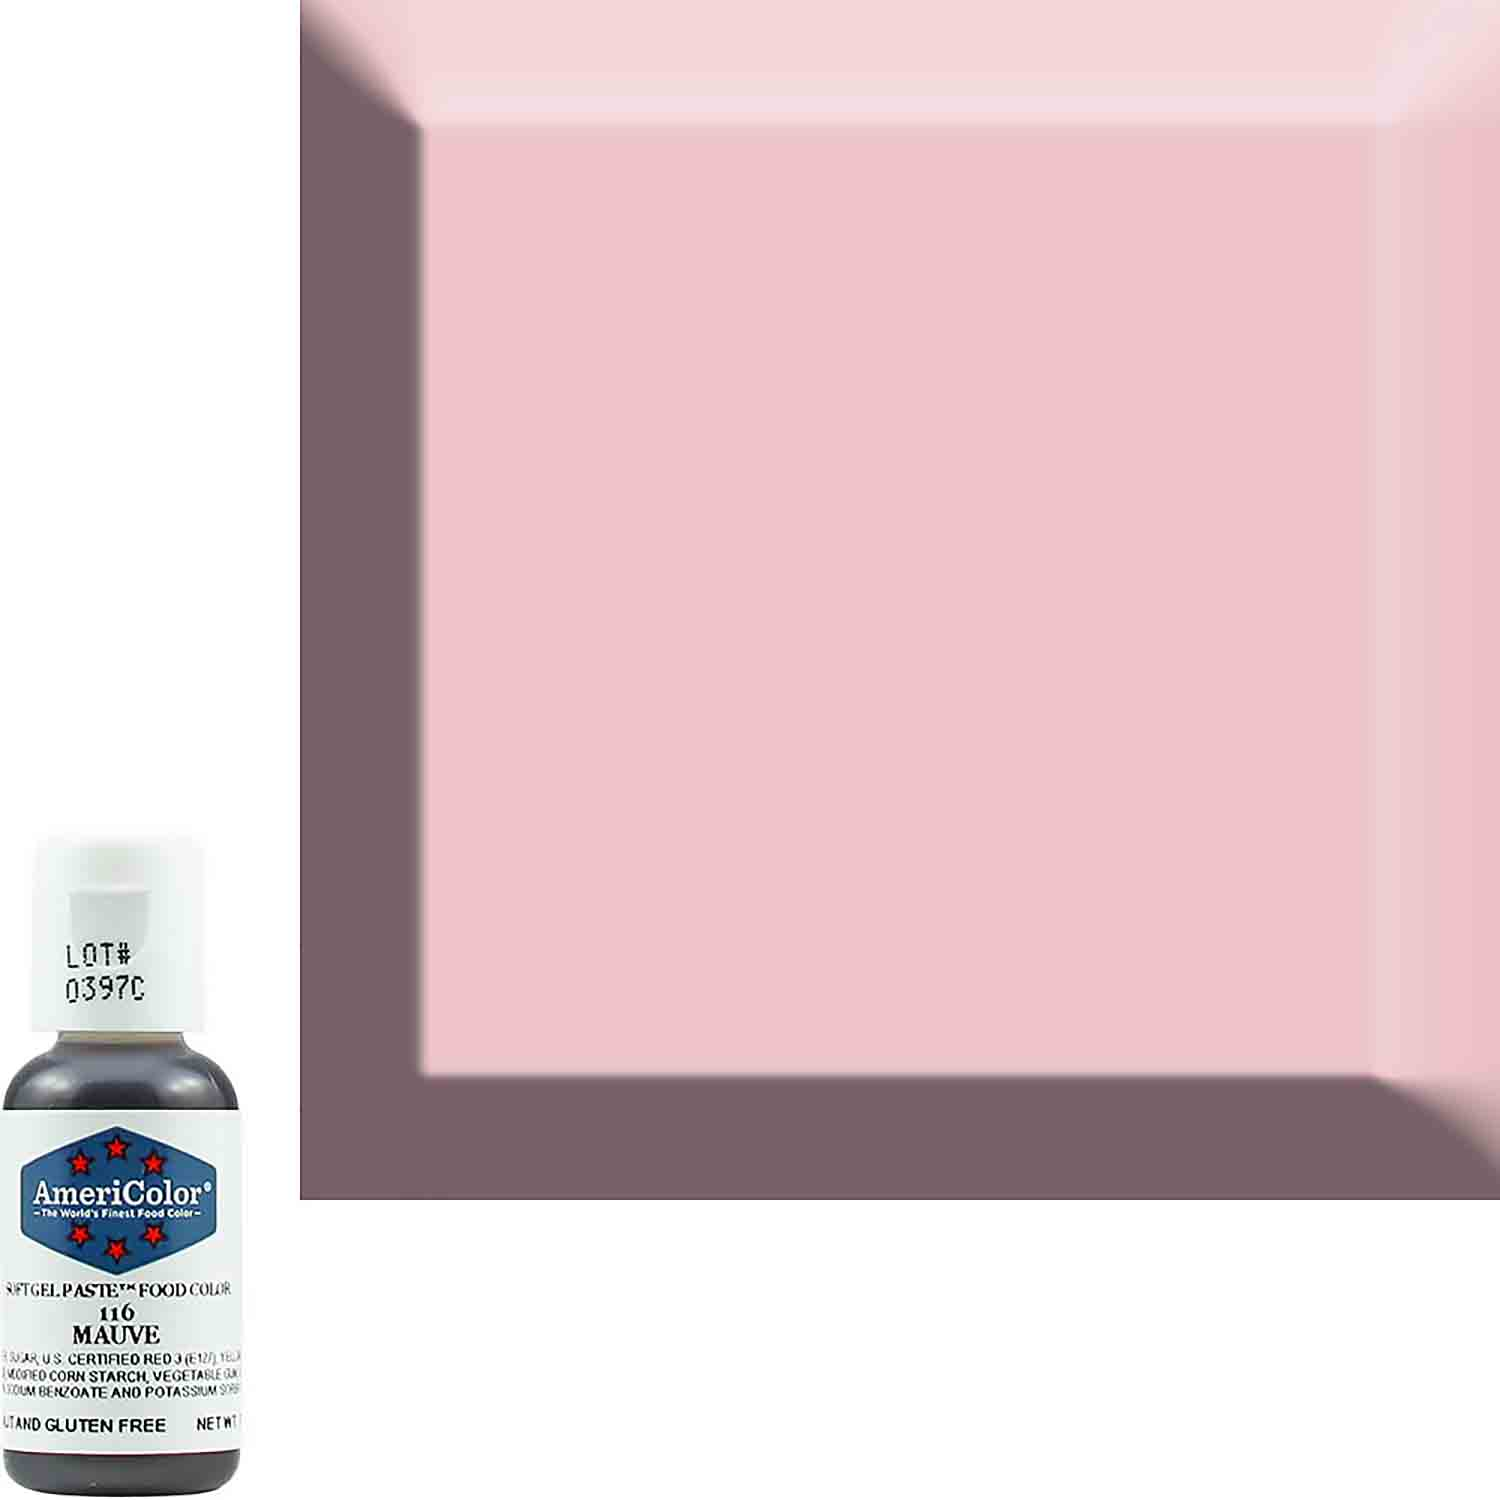 Mauve Americolor® Soft Gel Paste Food Color (Old # 41-8016)